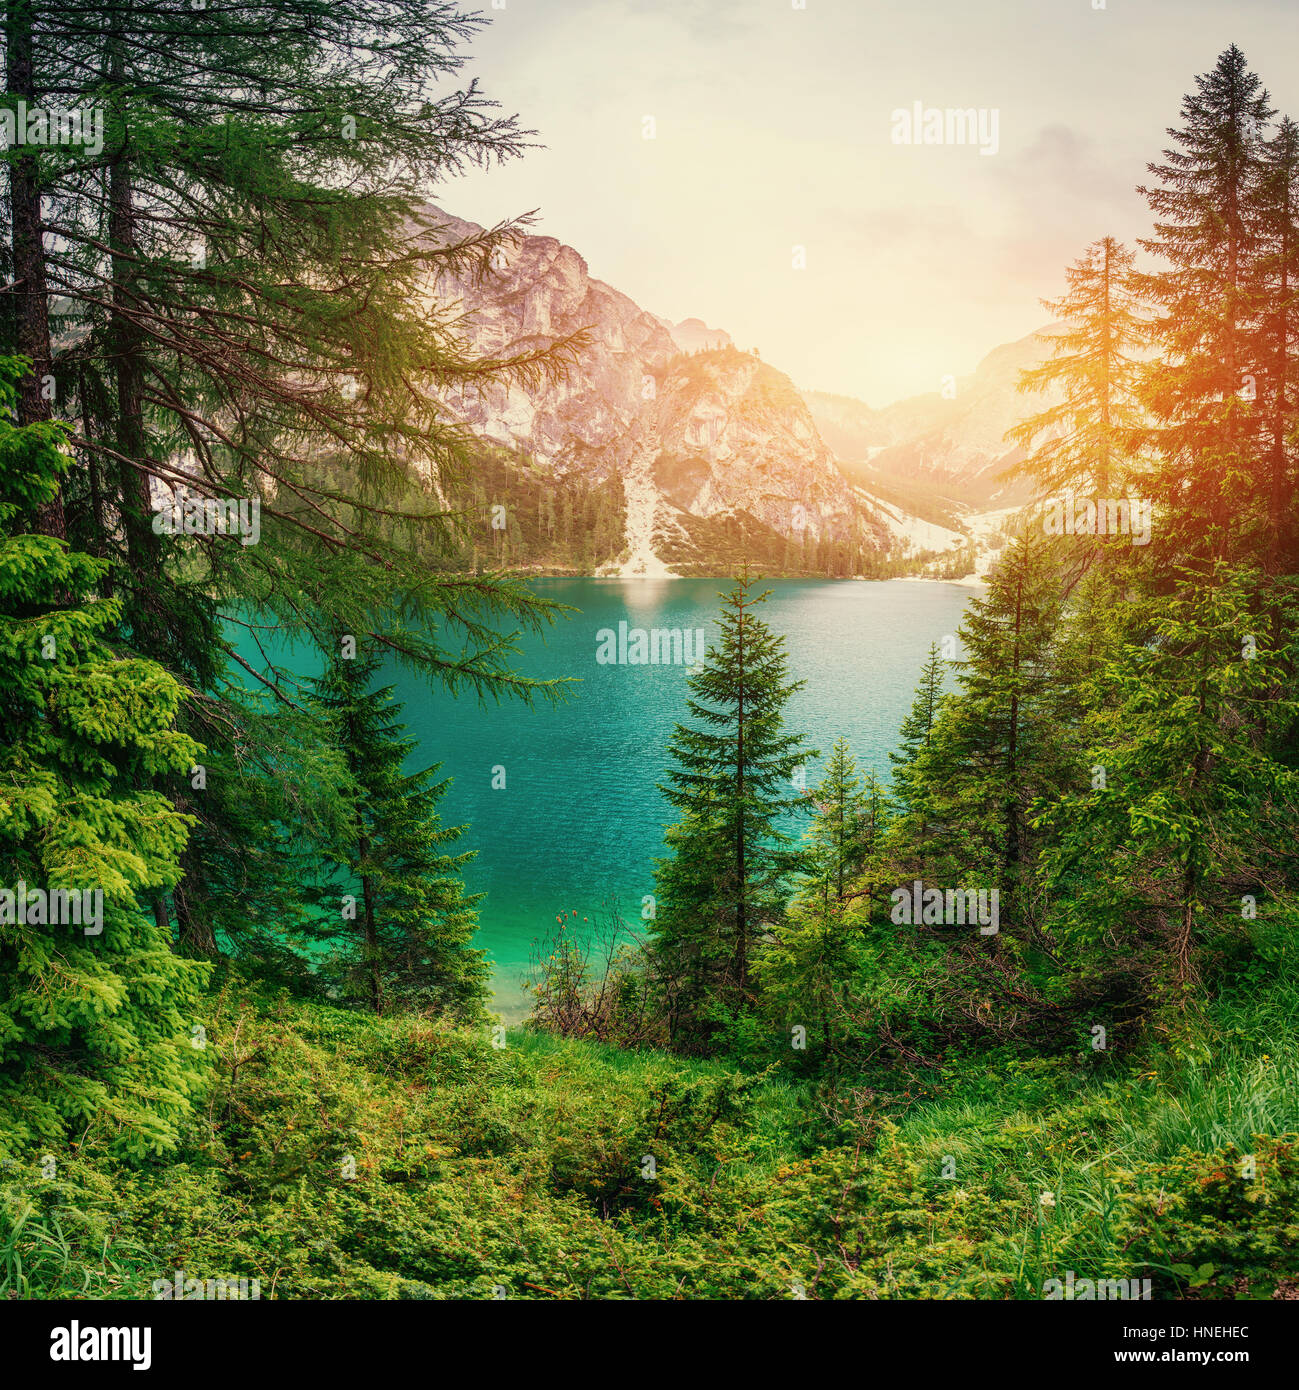 Mountain lake between by mountains  - Stock Image